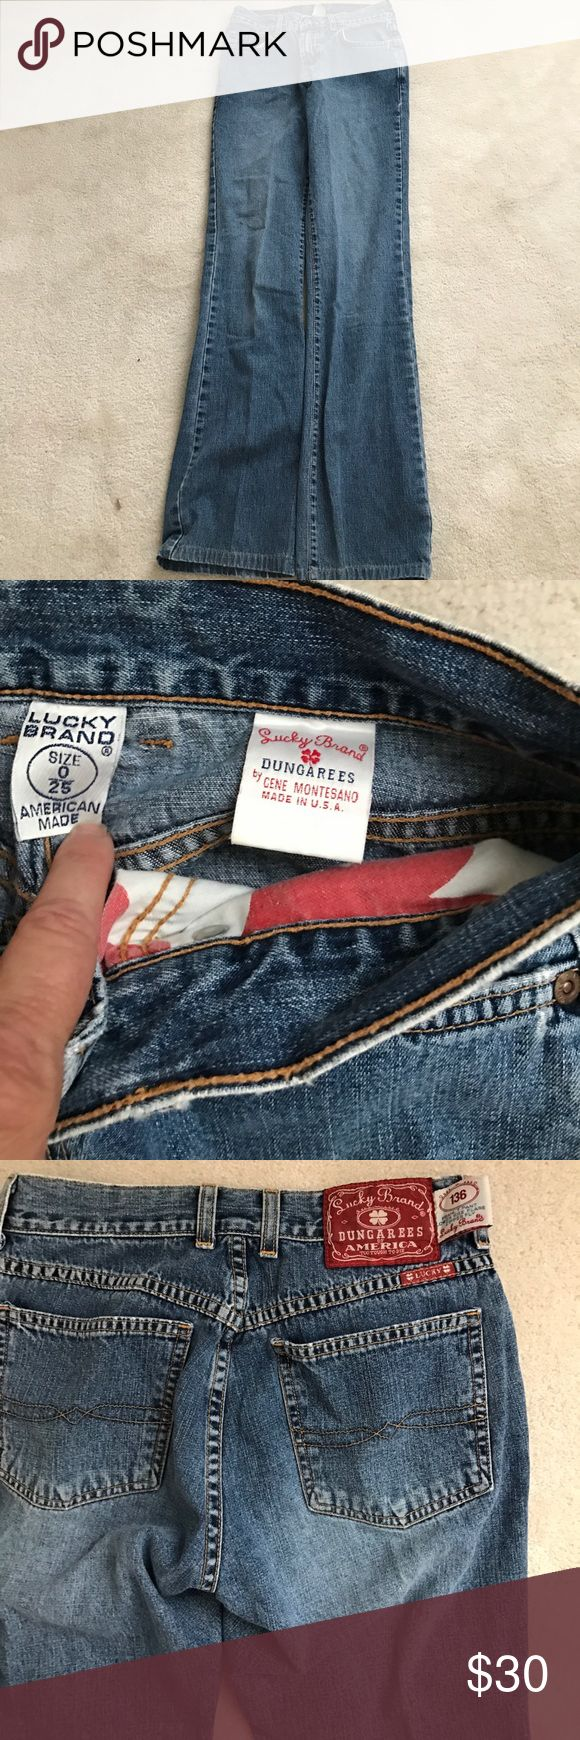 """Lucky Brand Dungarees jeans 0/25. Lucky Brand jeans Dungarees size 0/25. In nice ready to wear condition. All measurements are approximate: Waist  is 13"""". That is wear the most of wear is shown at waist. If you require more pictures- PLEASE ASK! Inseam is 30"""". Front rise is: 8 """".  Leg opening is: 8 1/2"""". Lucky Brand Pants"""